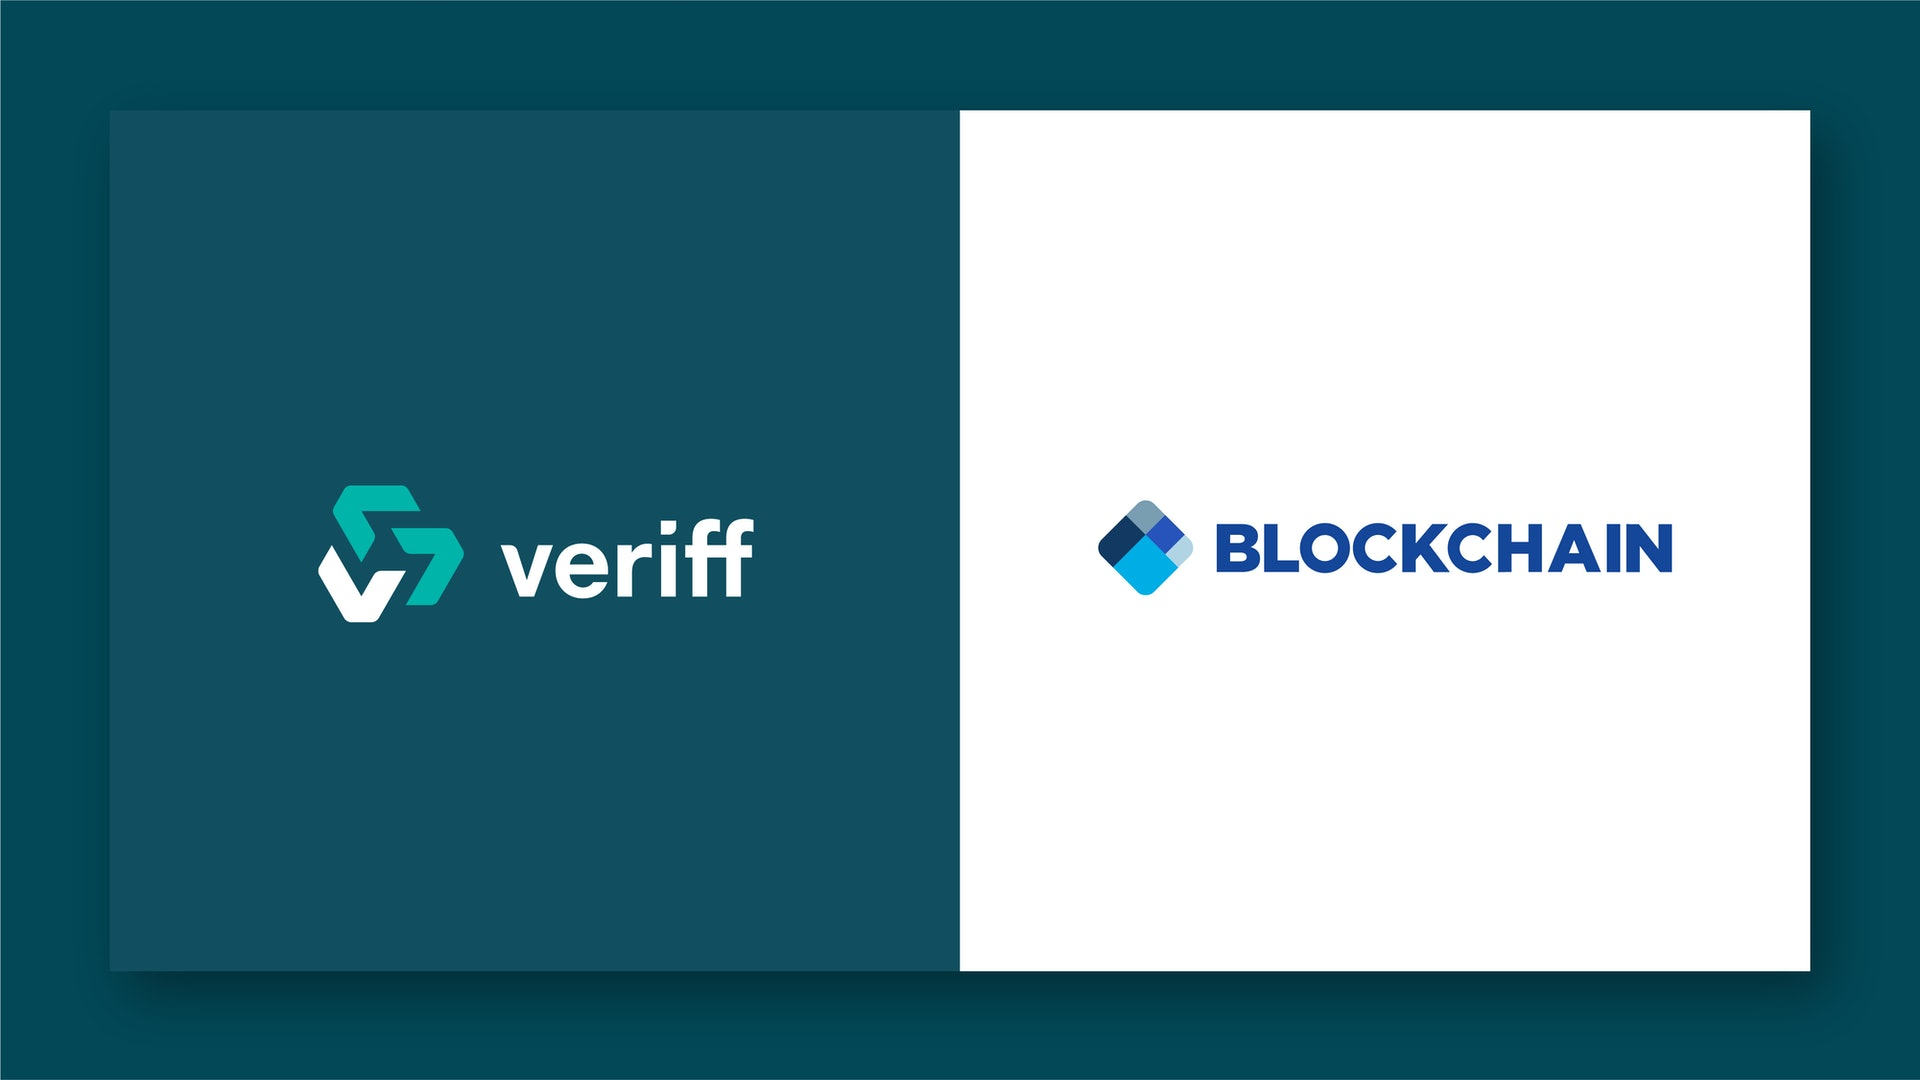 Veriff is honoured to partner with Blockchain